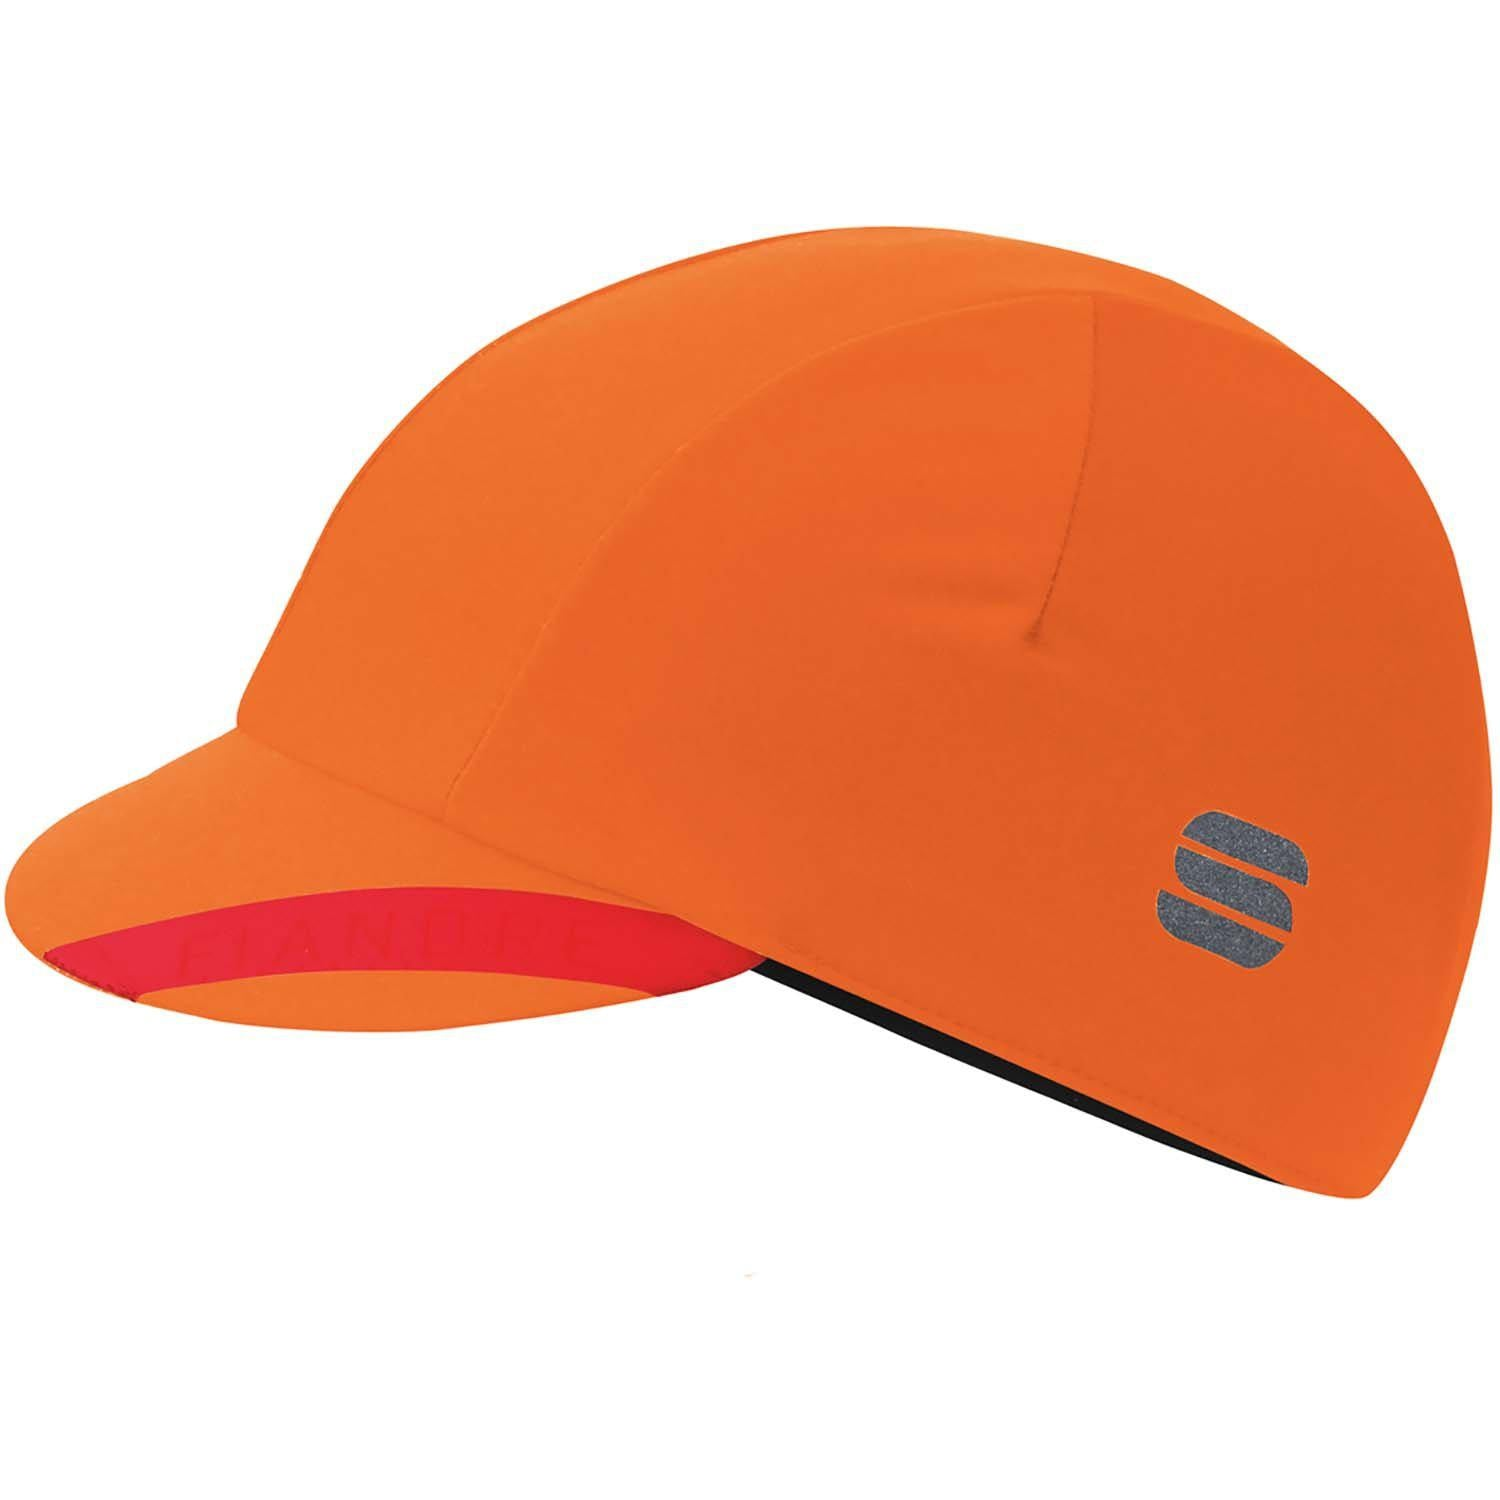 Sportful-Sportful Fiandre NoRain Cap-Orange SDR-UNI-SF200508508-saddleback-elite-performance-cycling